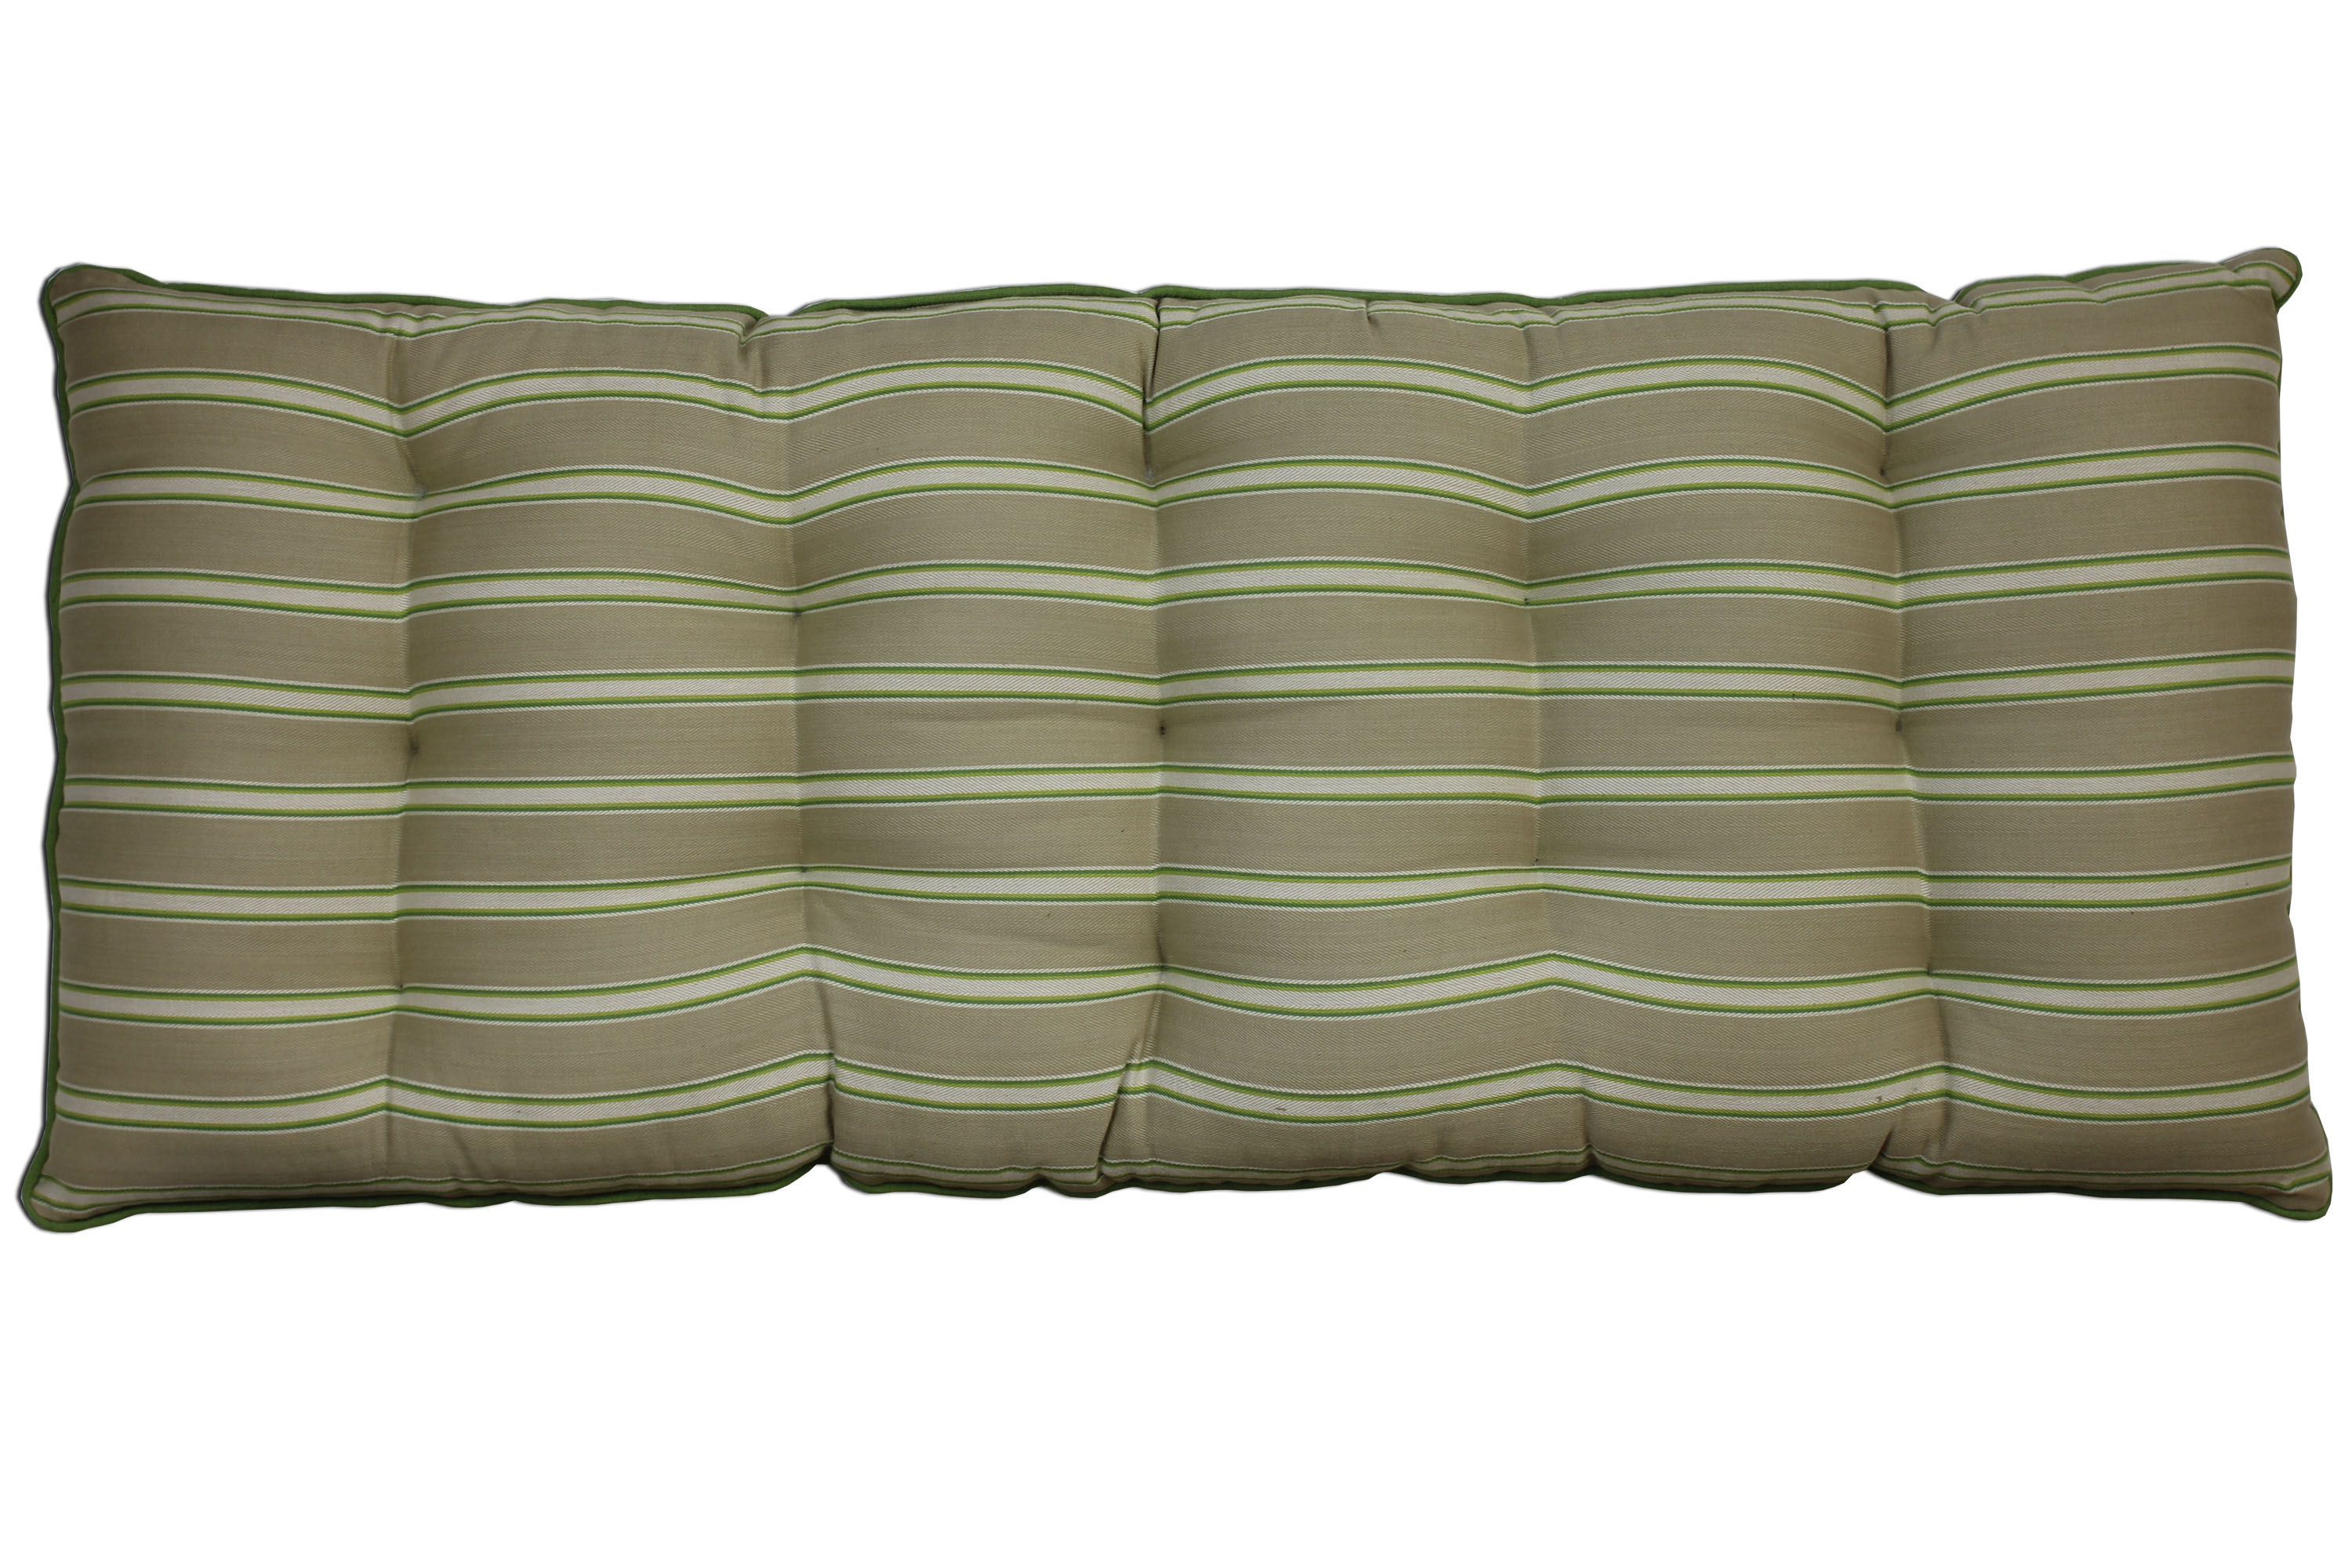 Beige Striped Bench Cushions | Long Seat Cushions Beige ...